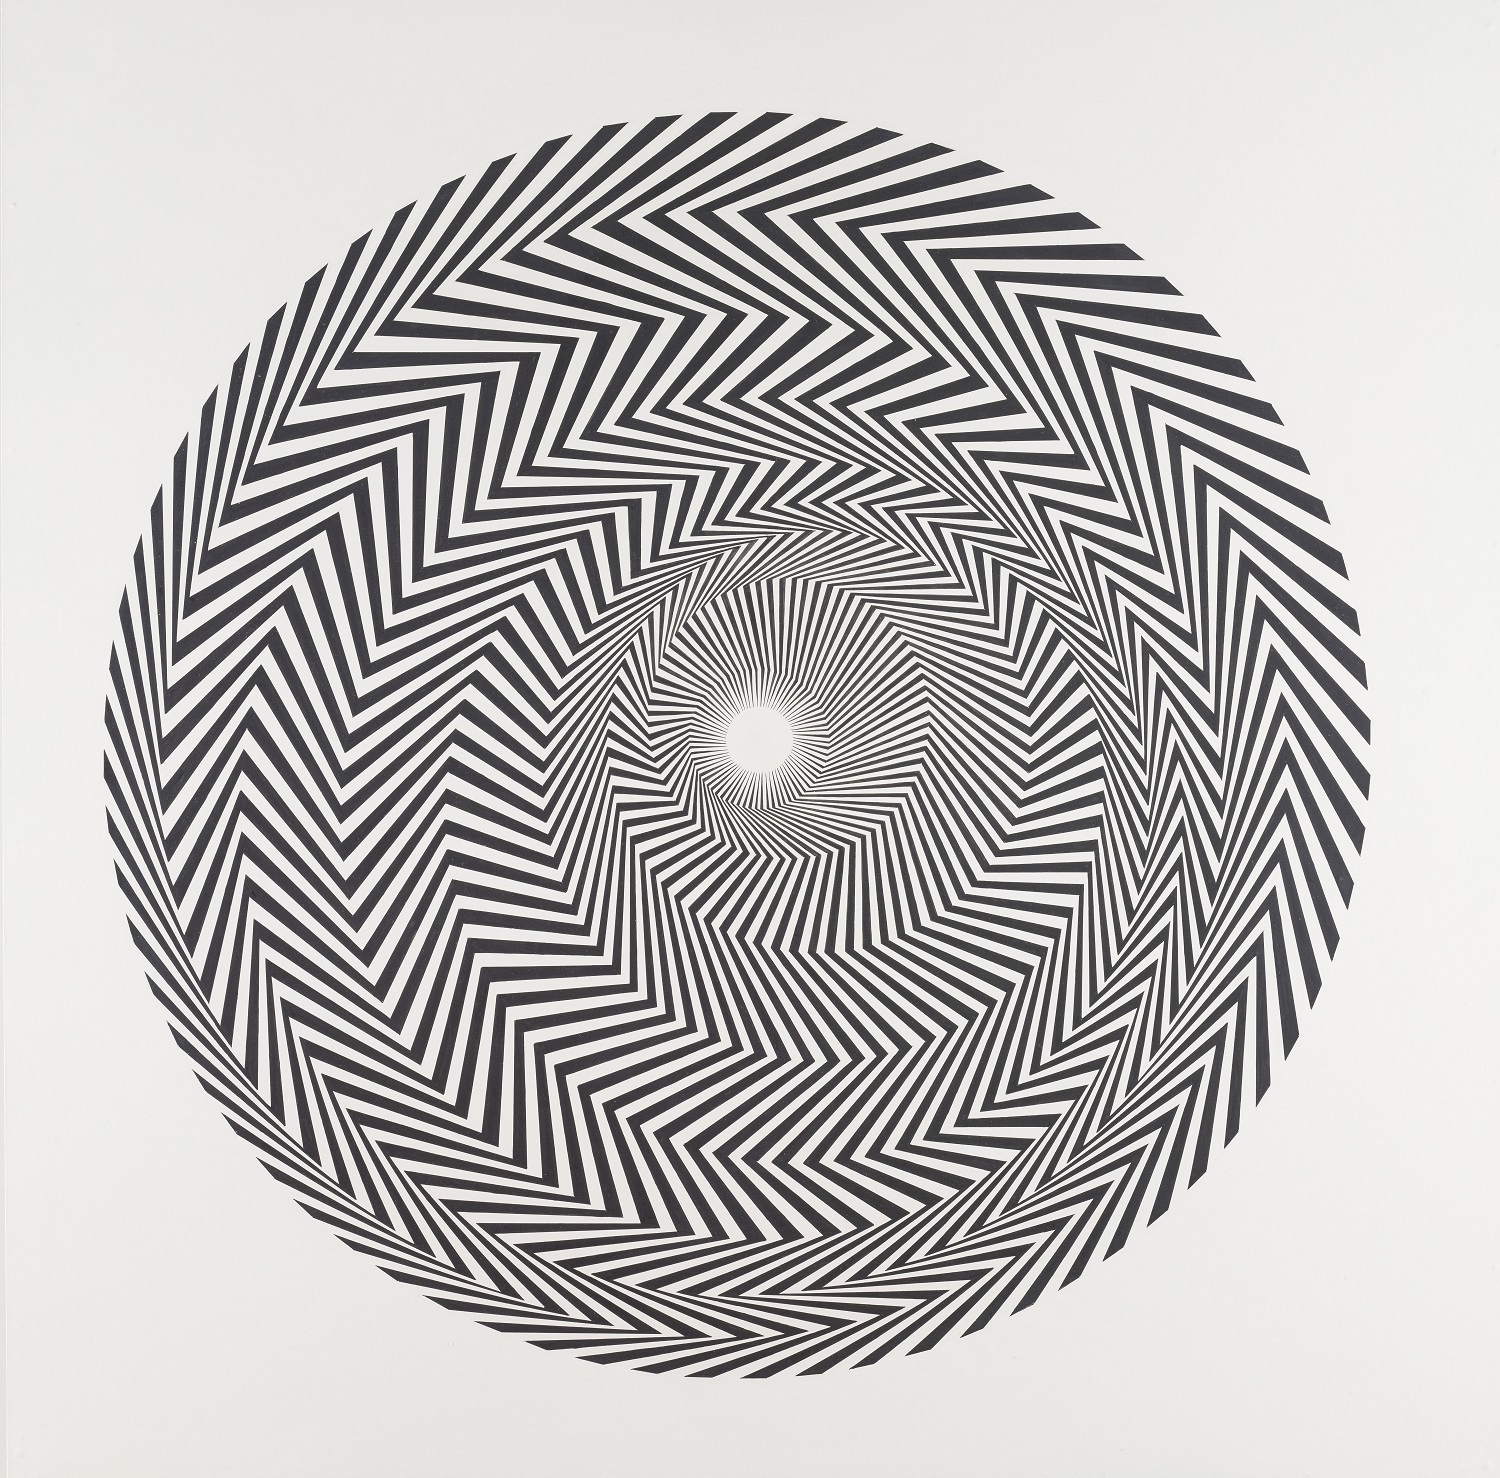 Bridget Riley Blaze 1, 1962 Private collection, on long loan to National Galleries of Scotland 2017 © Bridget Riley 2019. All rights reserved.  Photo © National Galleries of Scotland